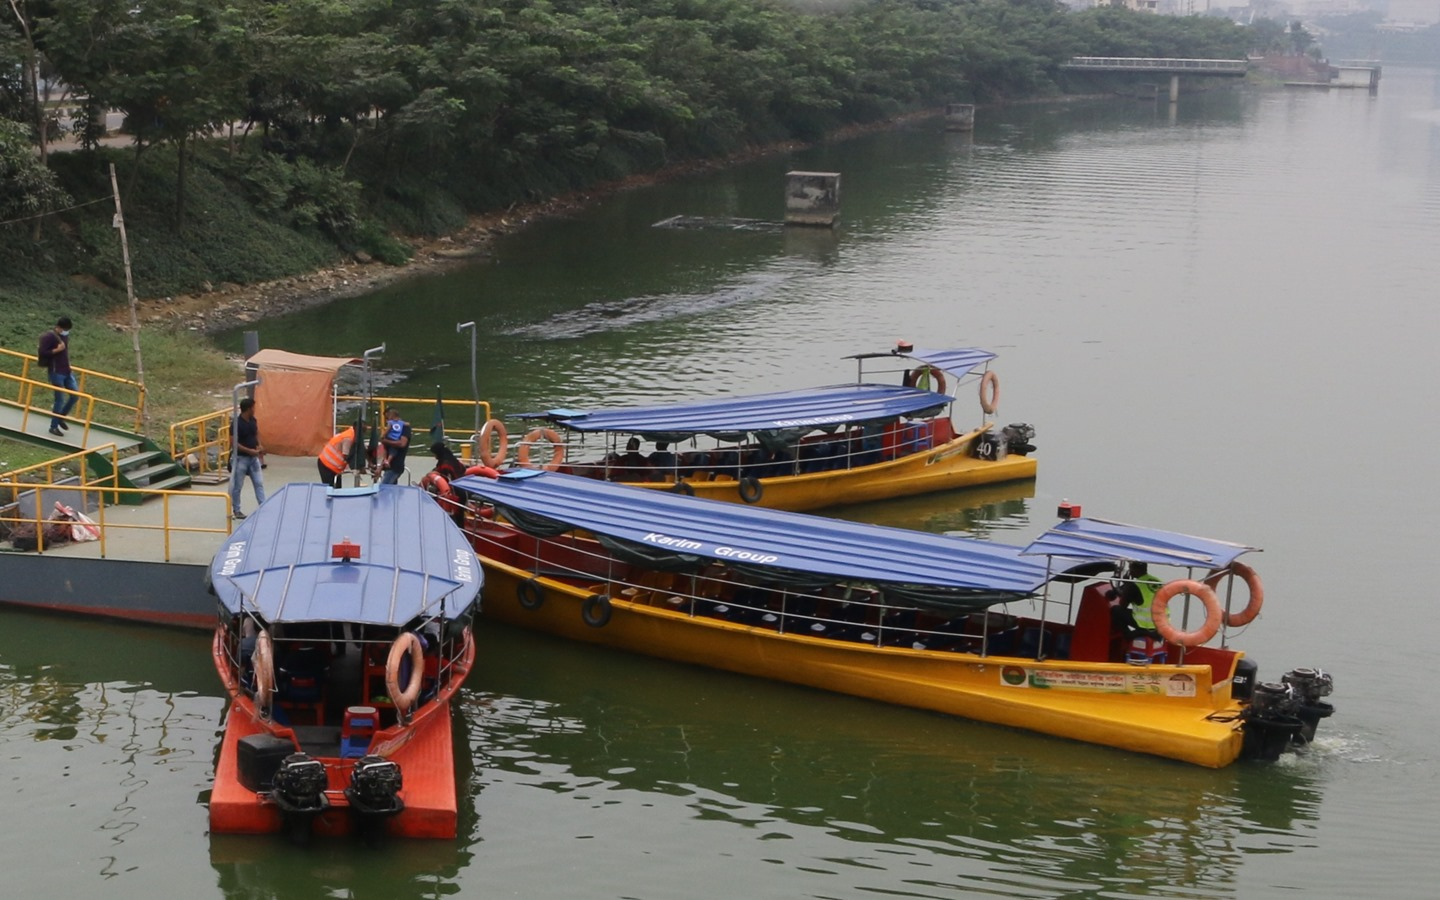 Boats of varying size operate in the Hatirjheel lake